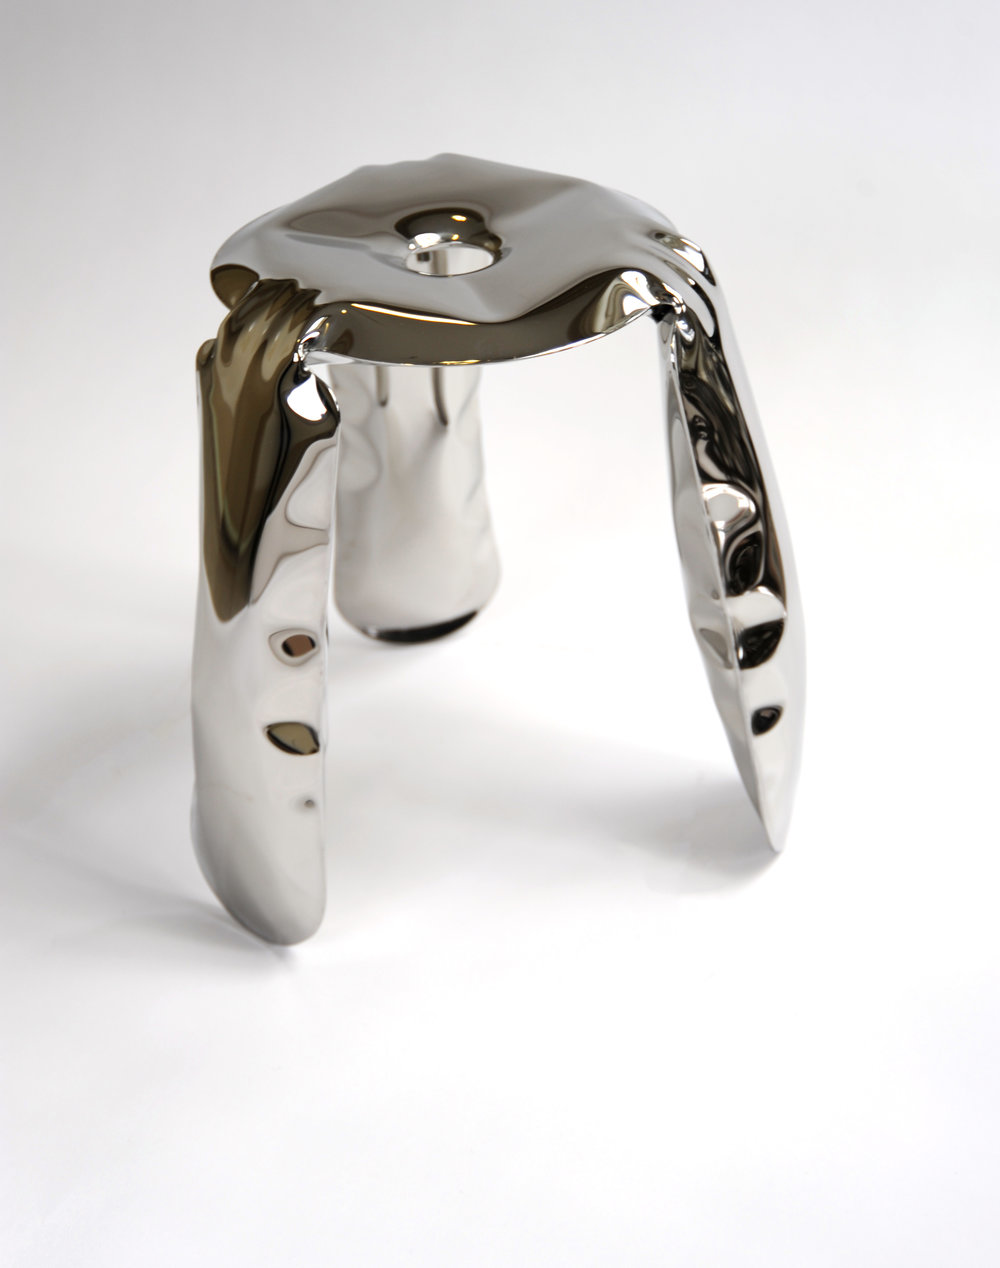 "Plopp Mini Stool (Inox Polished)     Unknown Designer      Zieta Production      Poland     Contemporary     polished stainless steel (inox)      Dia 10"" H 15""     LIST PRICE: $425    DESIGNER DISCOUNT PRICE: $361.25    LEAD TIME: 3-5 Shipping & handling    QUANTITY IN STOCK: 1    ONLINE PLATFORMS: kM Web, Artsy"